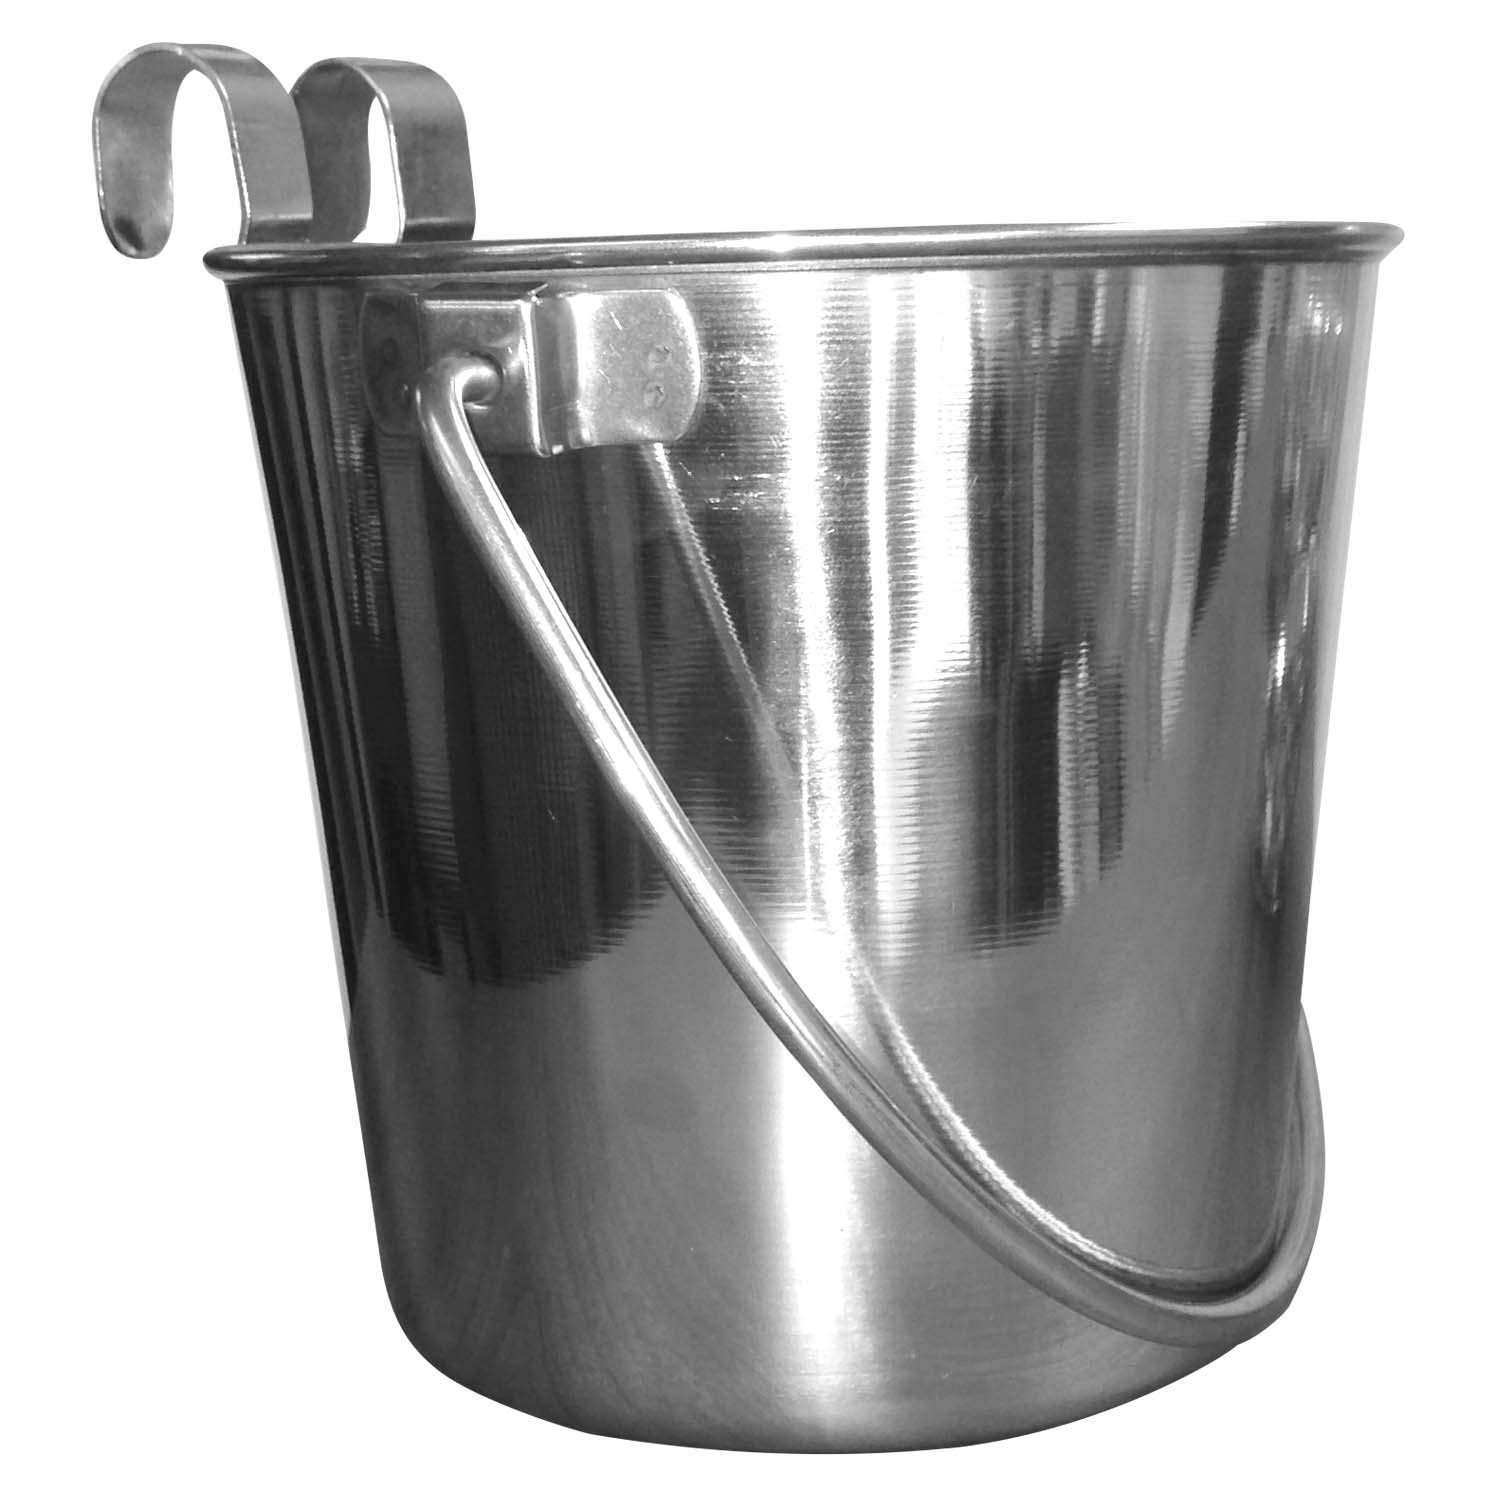 QT Dog Flat Sided Stainless Steel Bucket with Hooks, 1 Quart by QT Dog